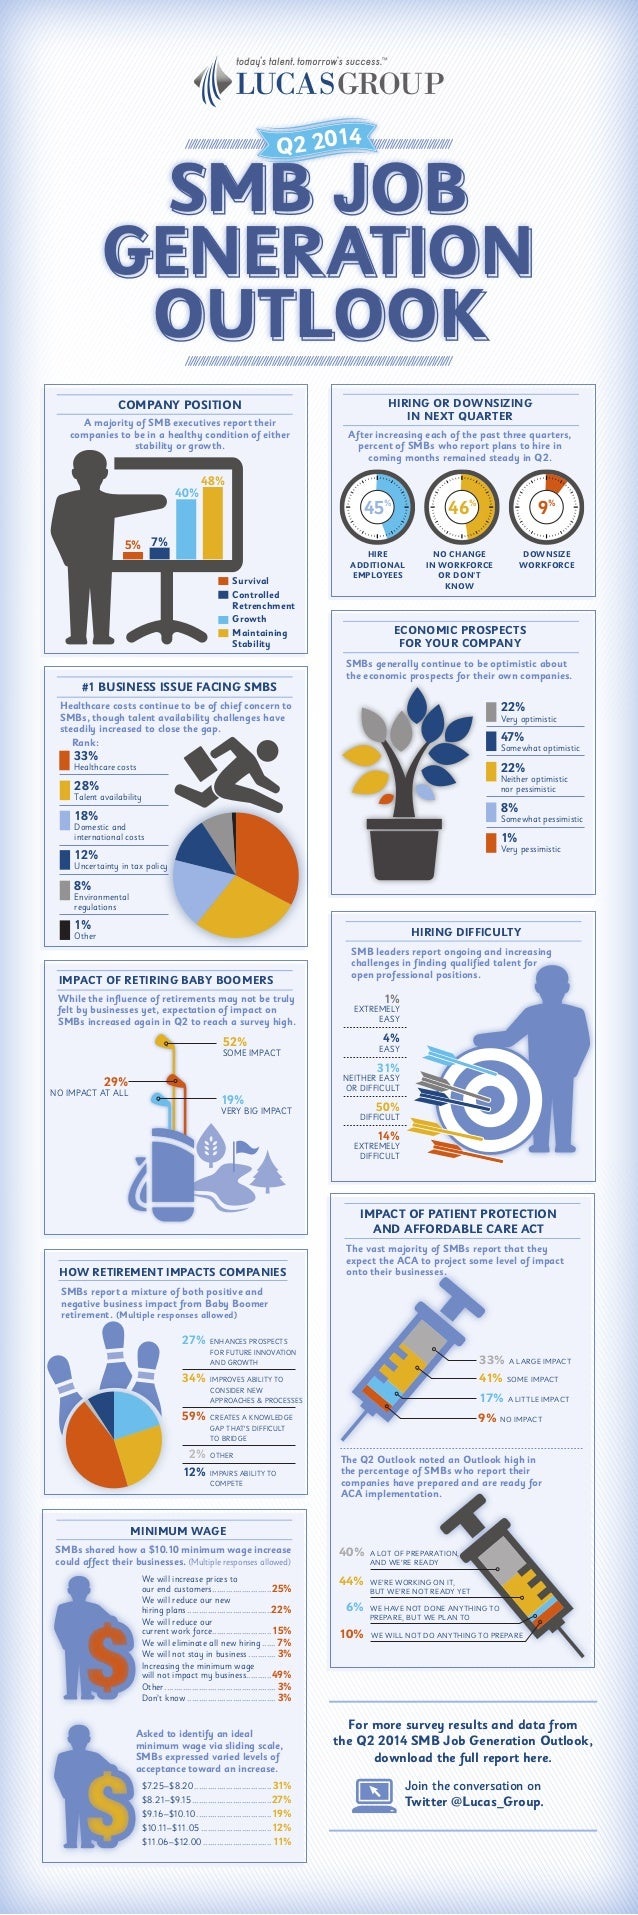 SMB JOB GENERATION OUTLOOK Q2 2014 HIRING OR DOWNSIZING IN NEXT QUARTER After increasing each of the past three quarters, ...